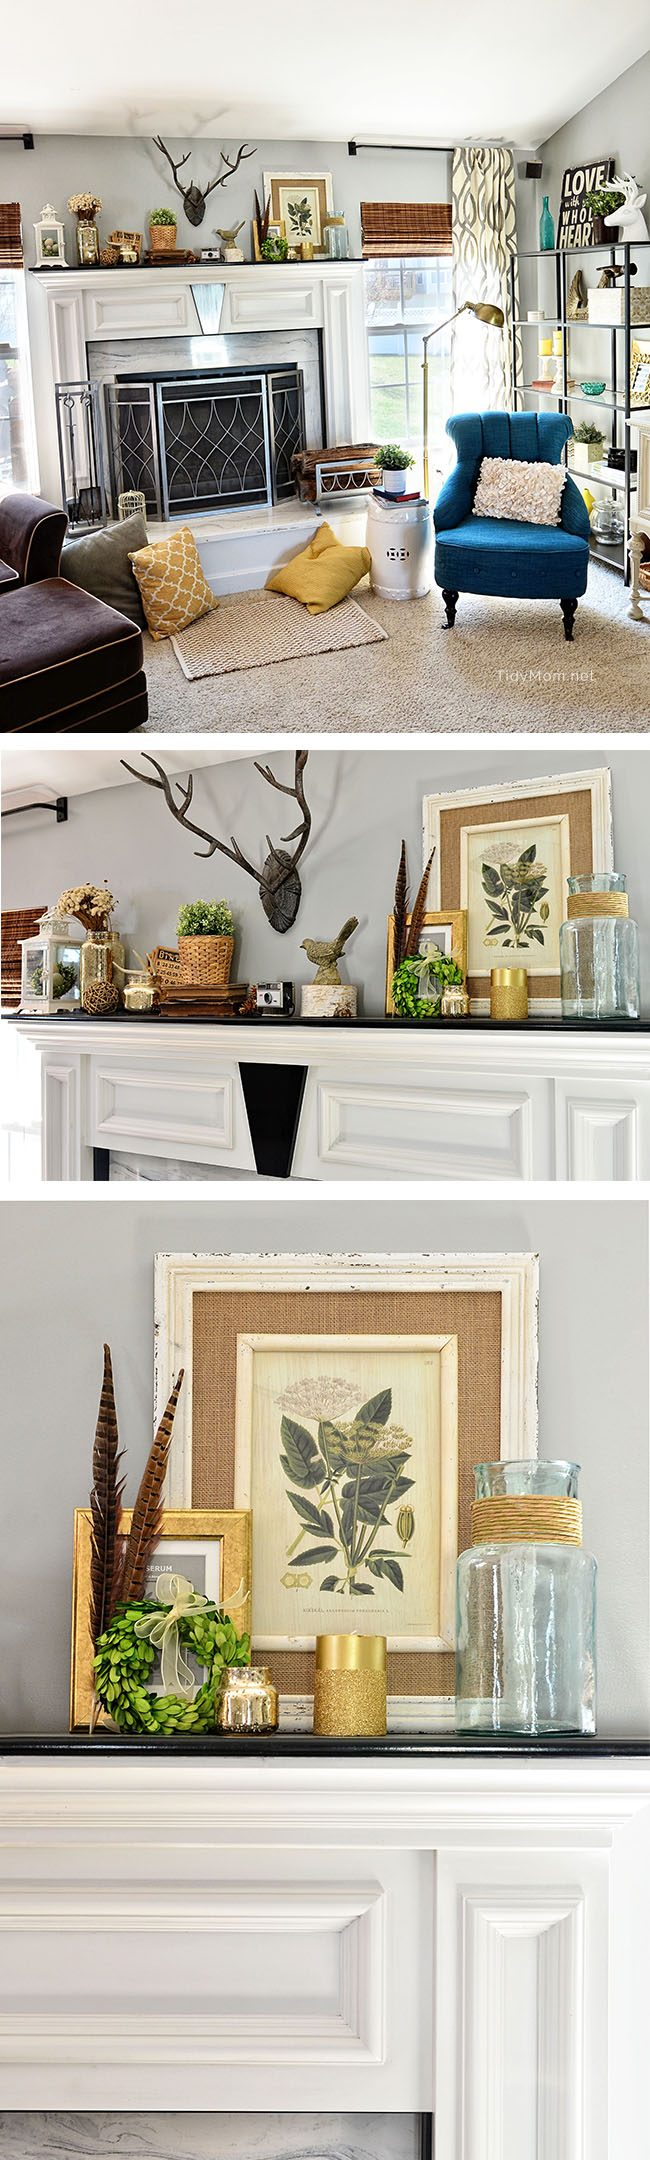 Spring Mantle and Family Room decor at TidyMom.net